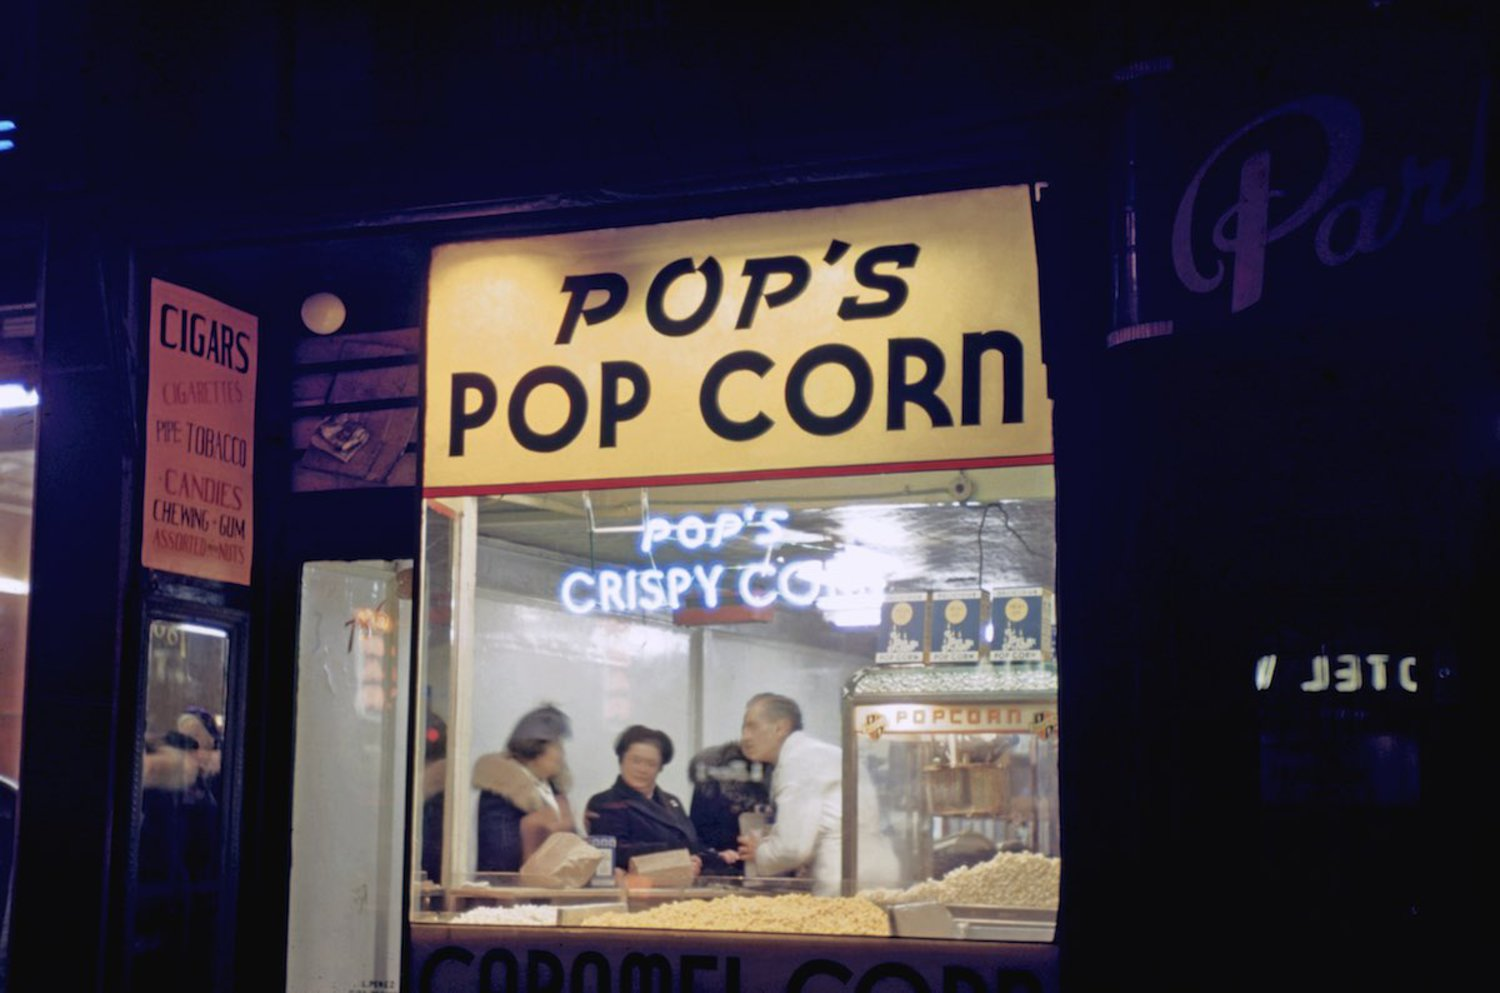 1946 Pop corn vendor in Times Square at night with patrons inside.